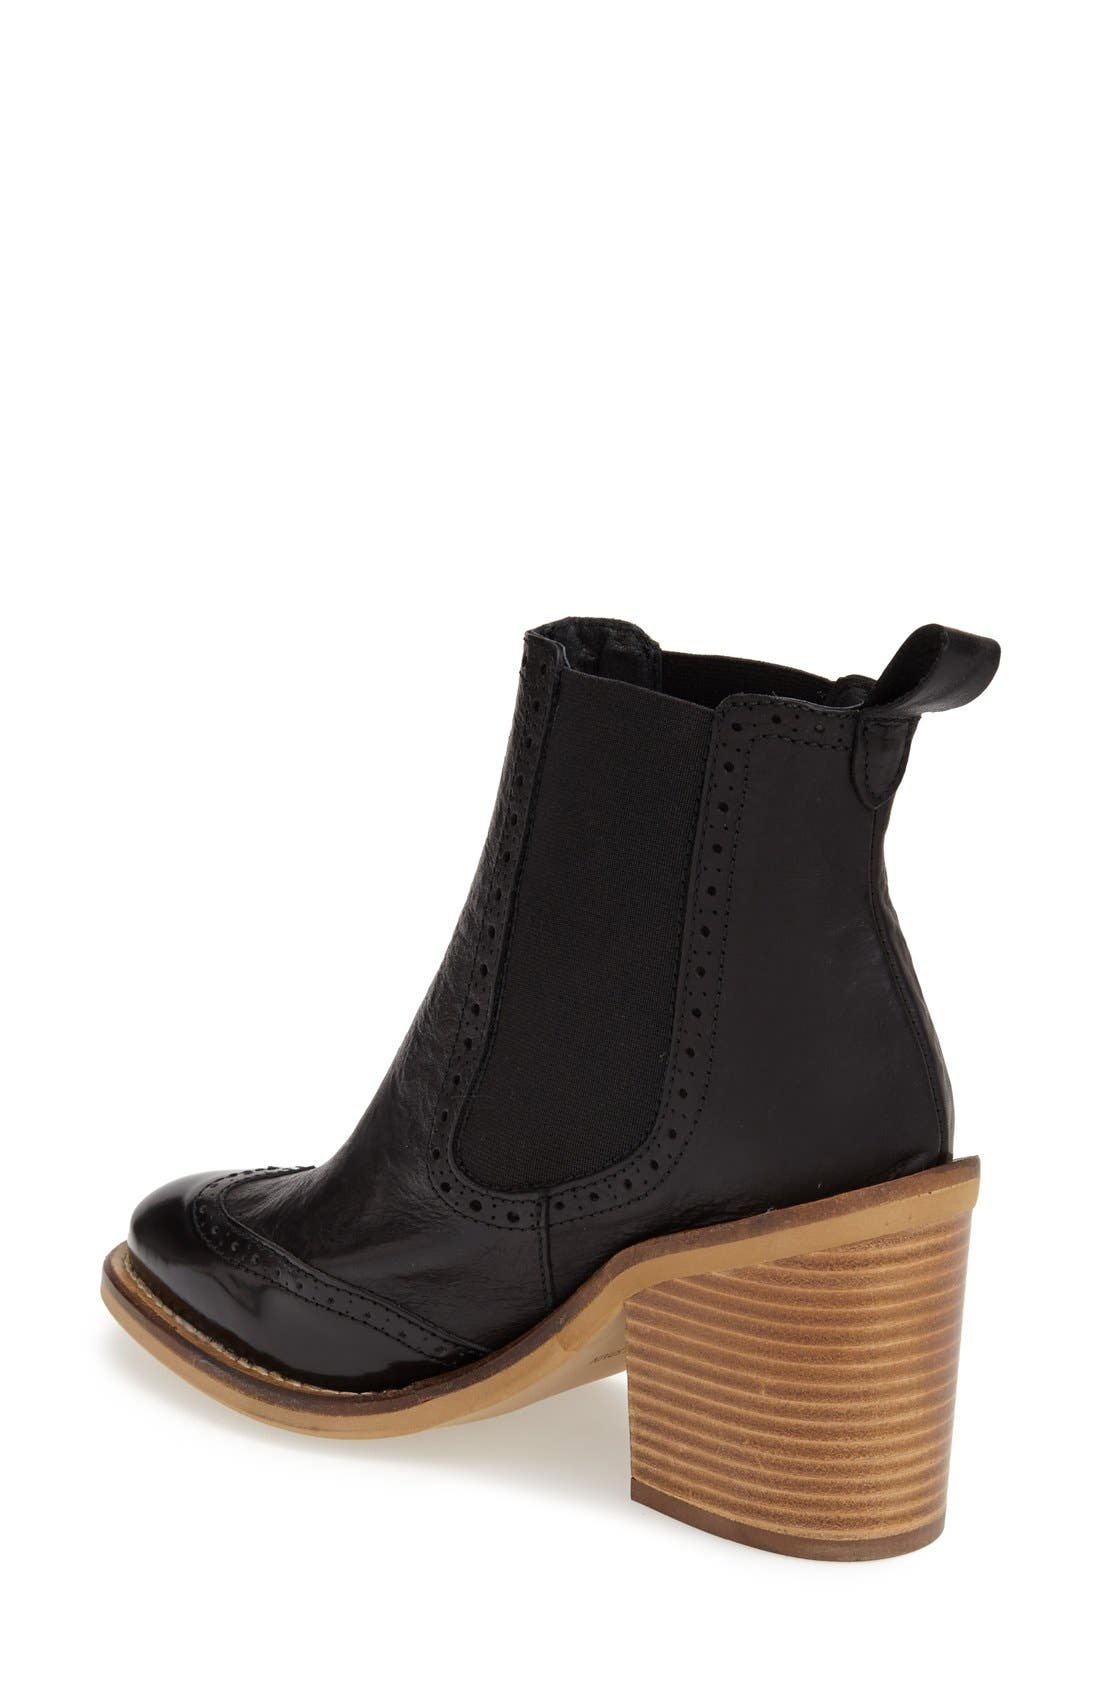 Alternate Image 2  - Topshop 'Maine Brogue' Chelsea Ankle Bootie (Women)